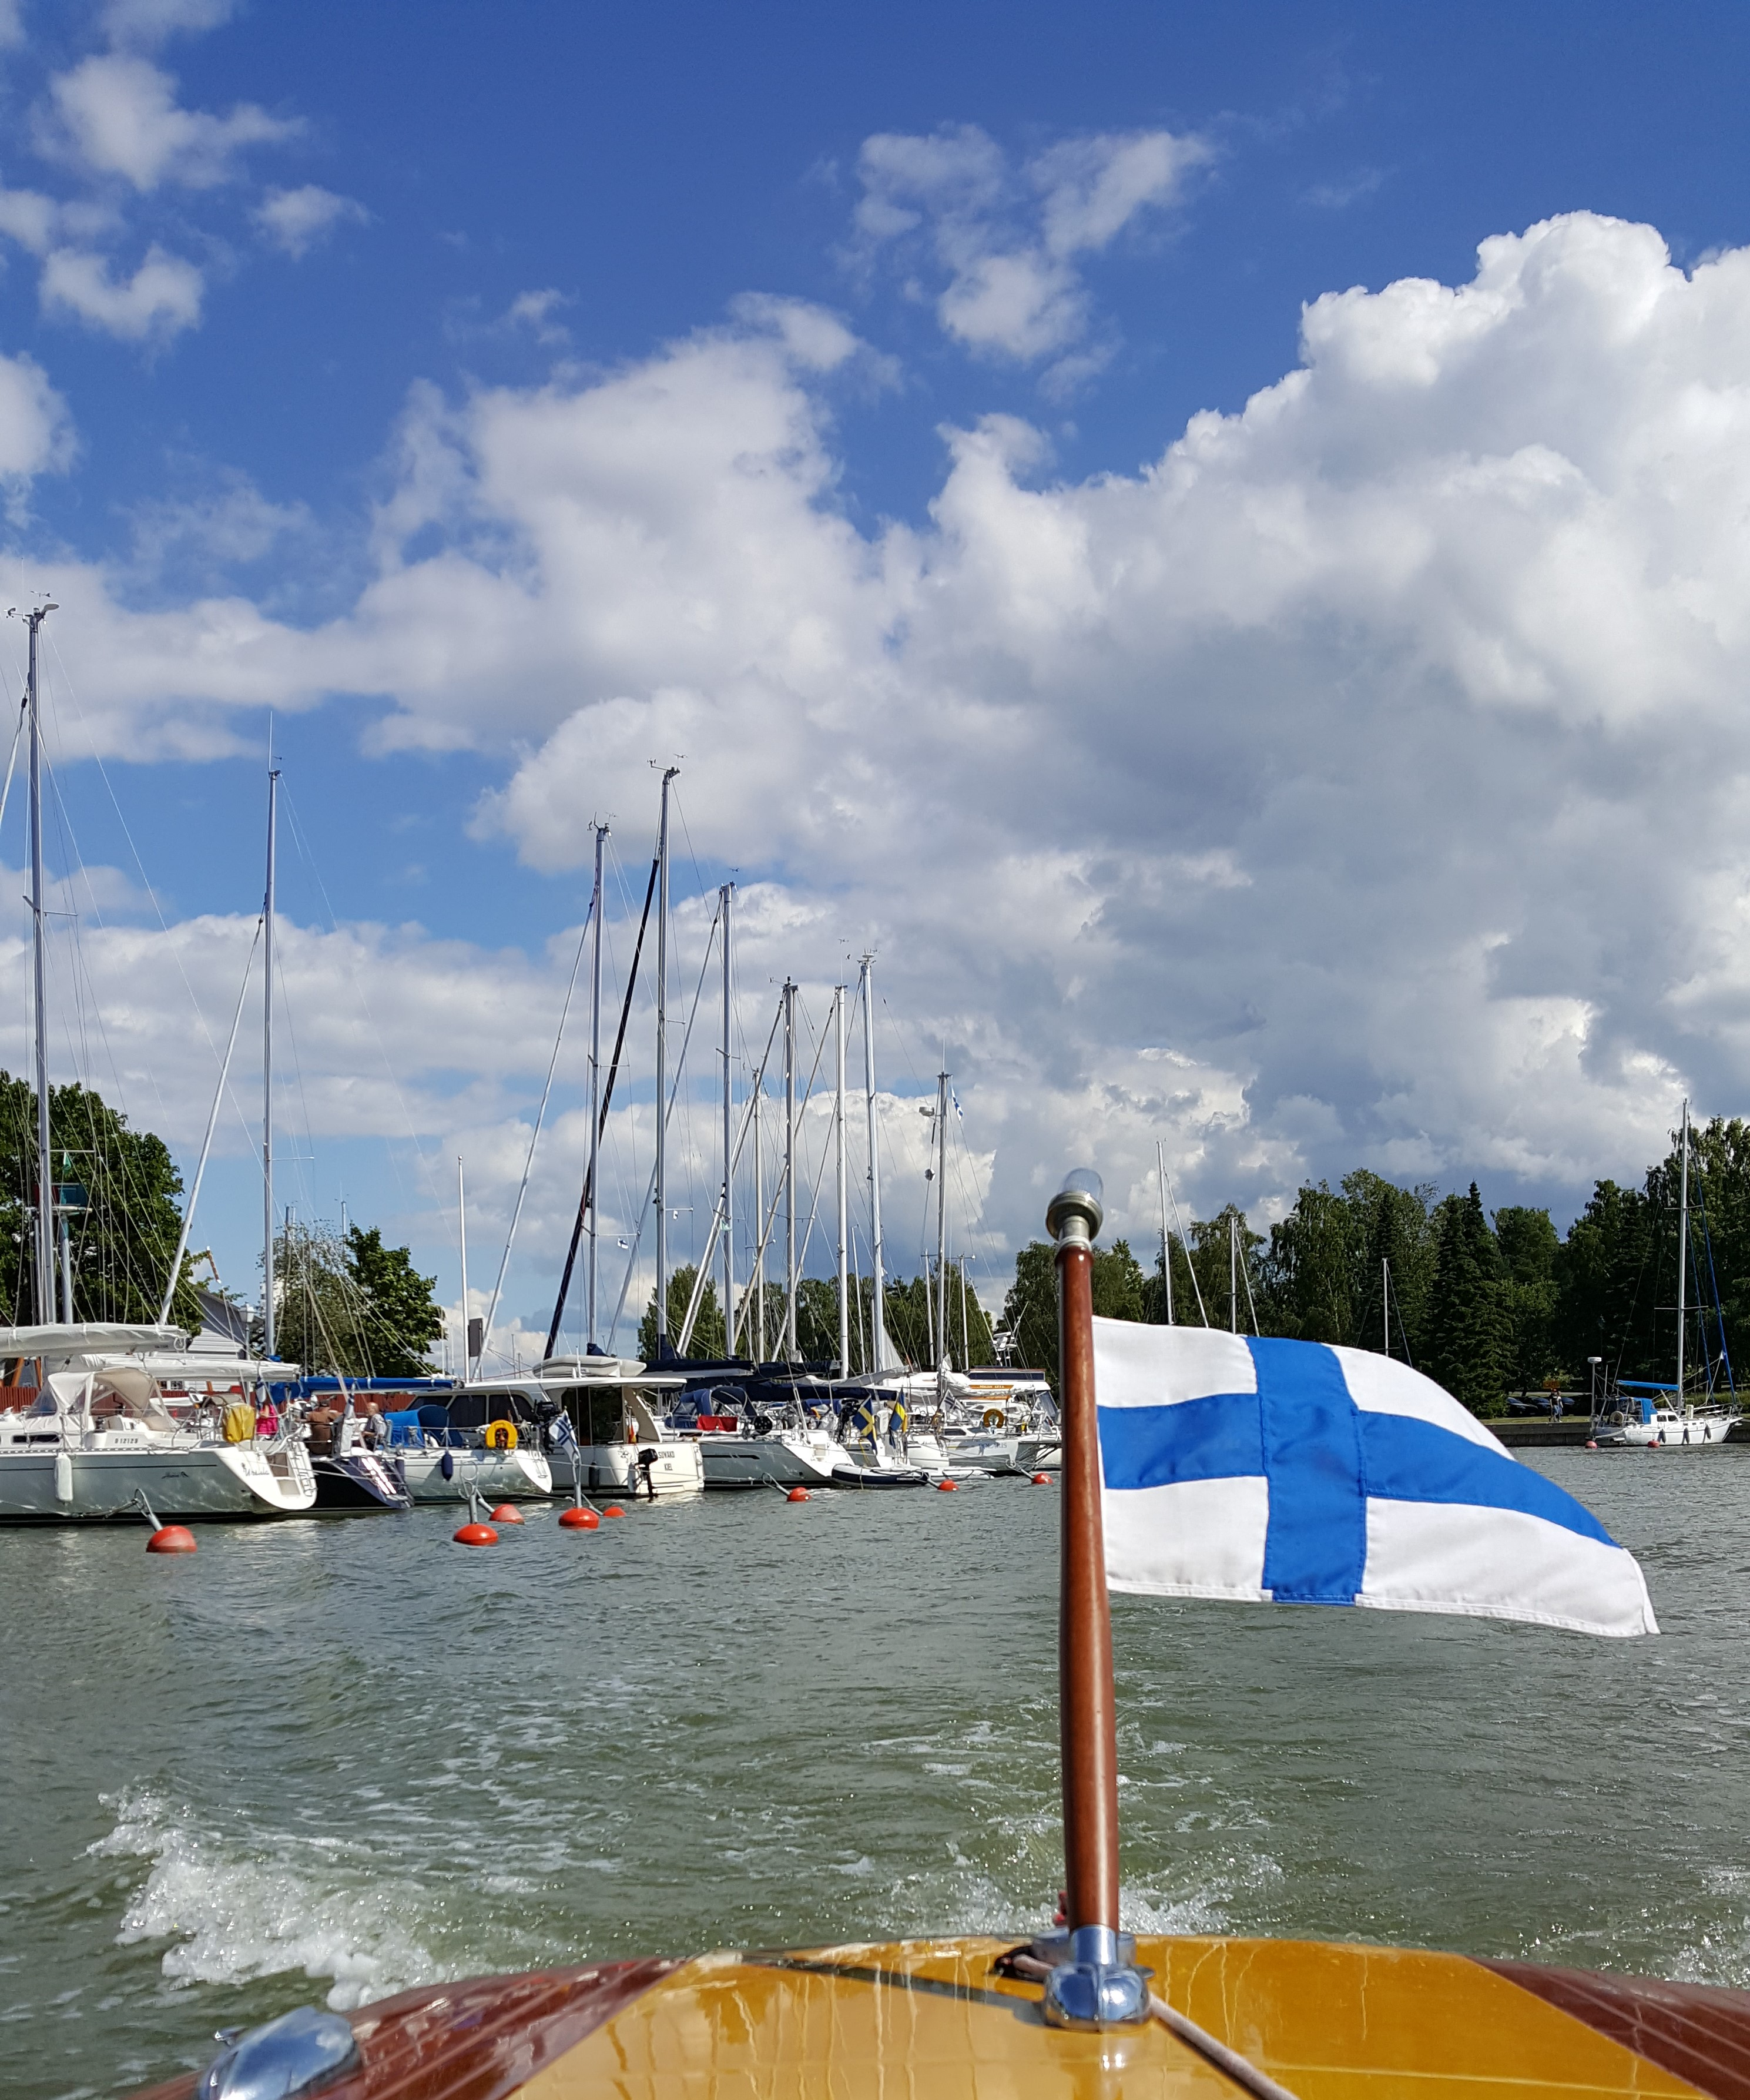 Honouring the 100 year old Finland!